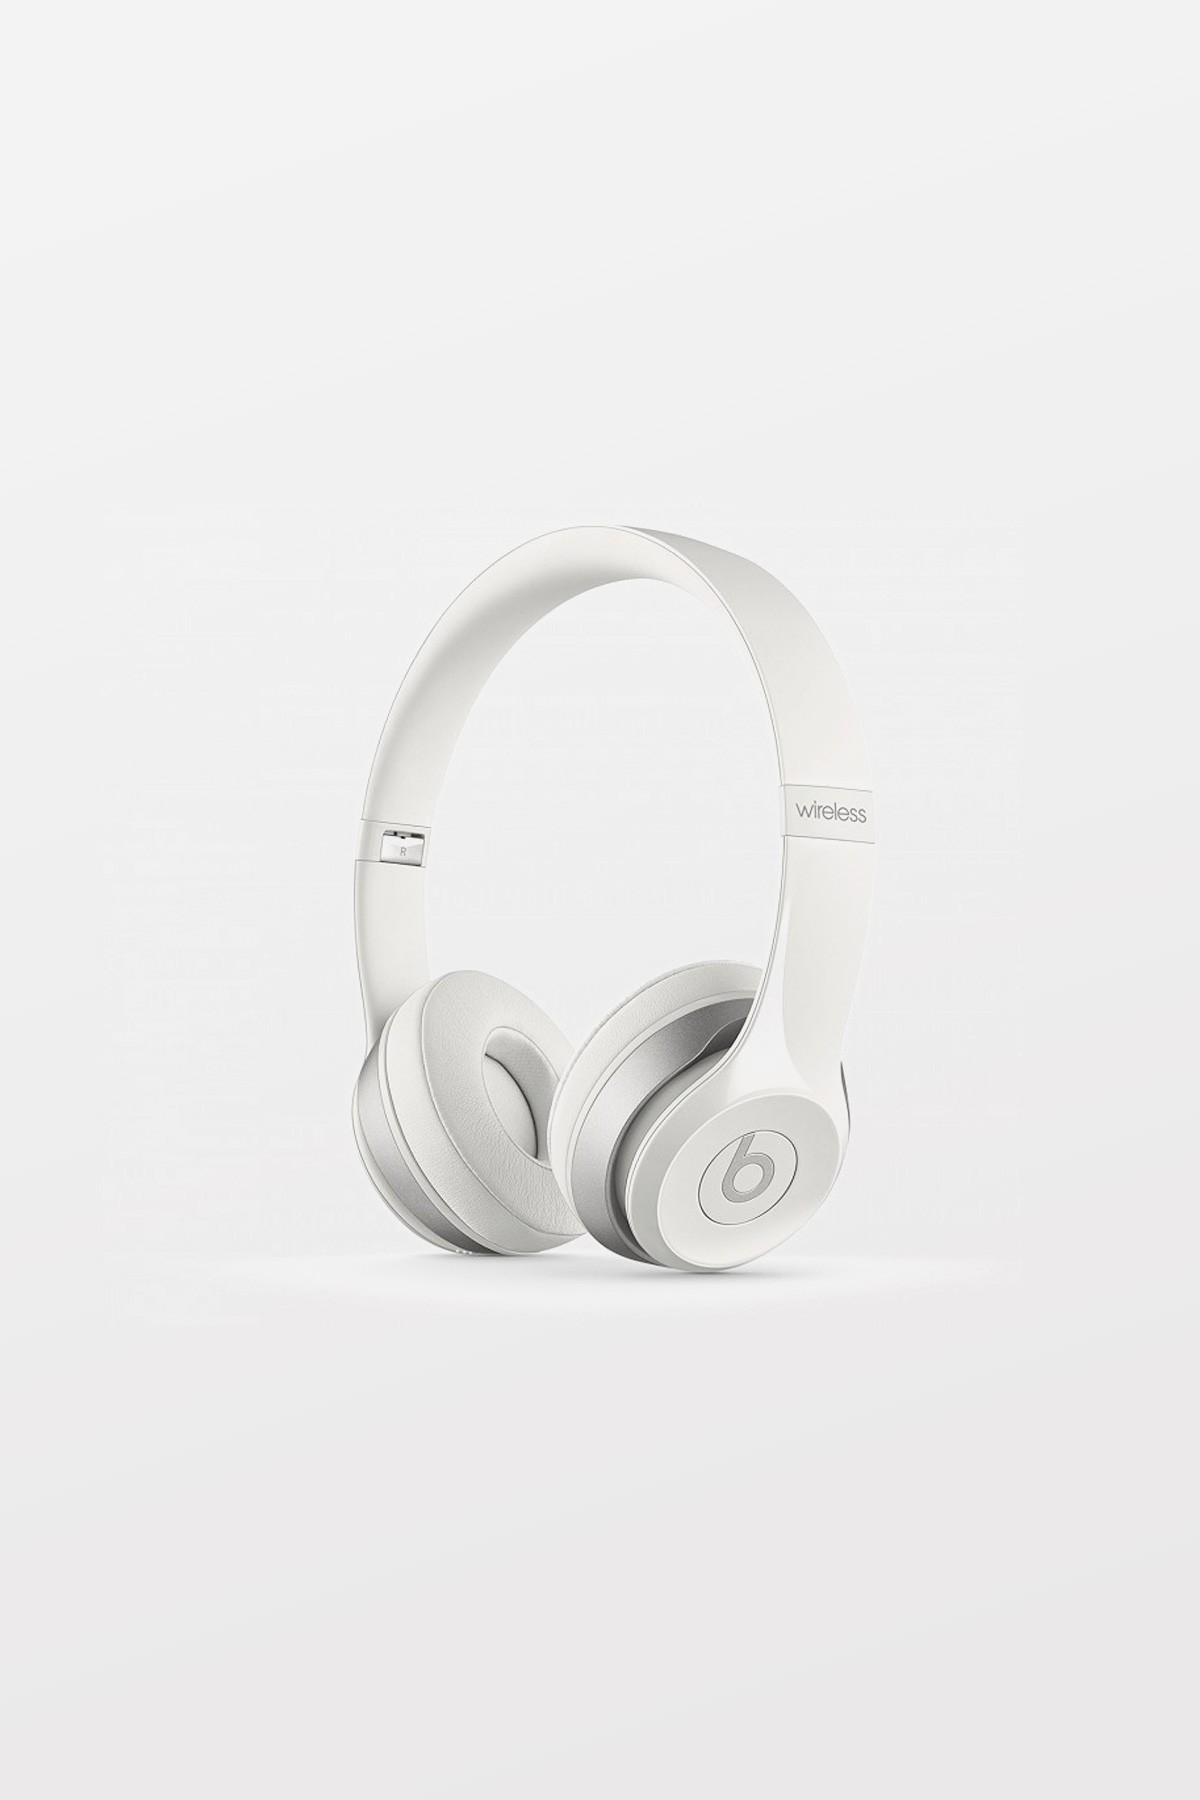 Beats By Dr Dre Solo2 Wireless - White - Refurbished